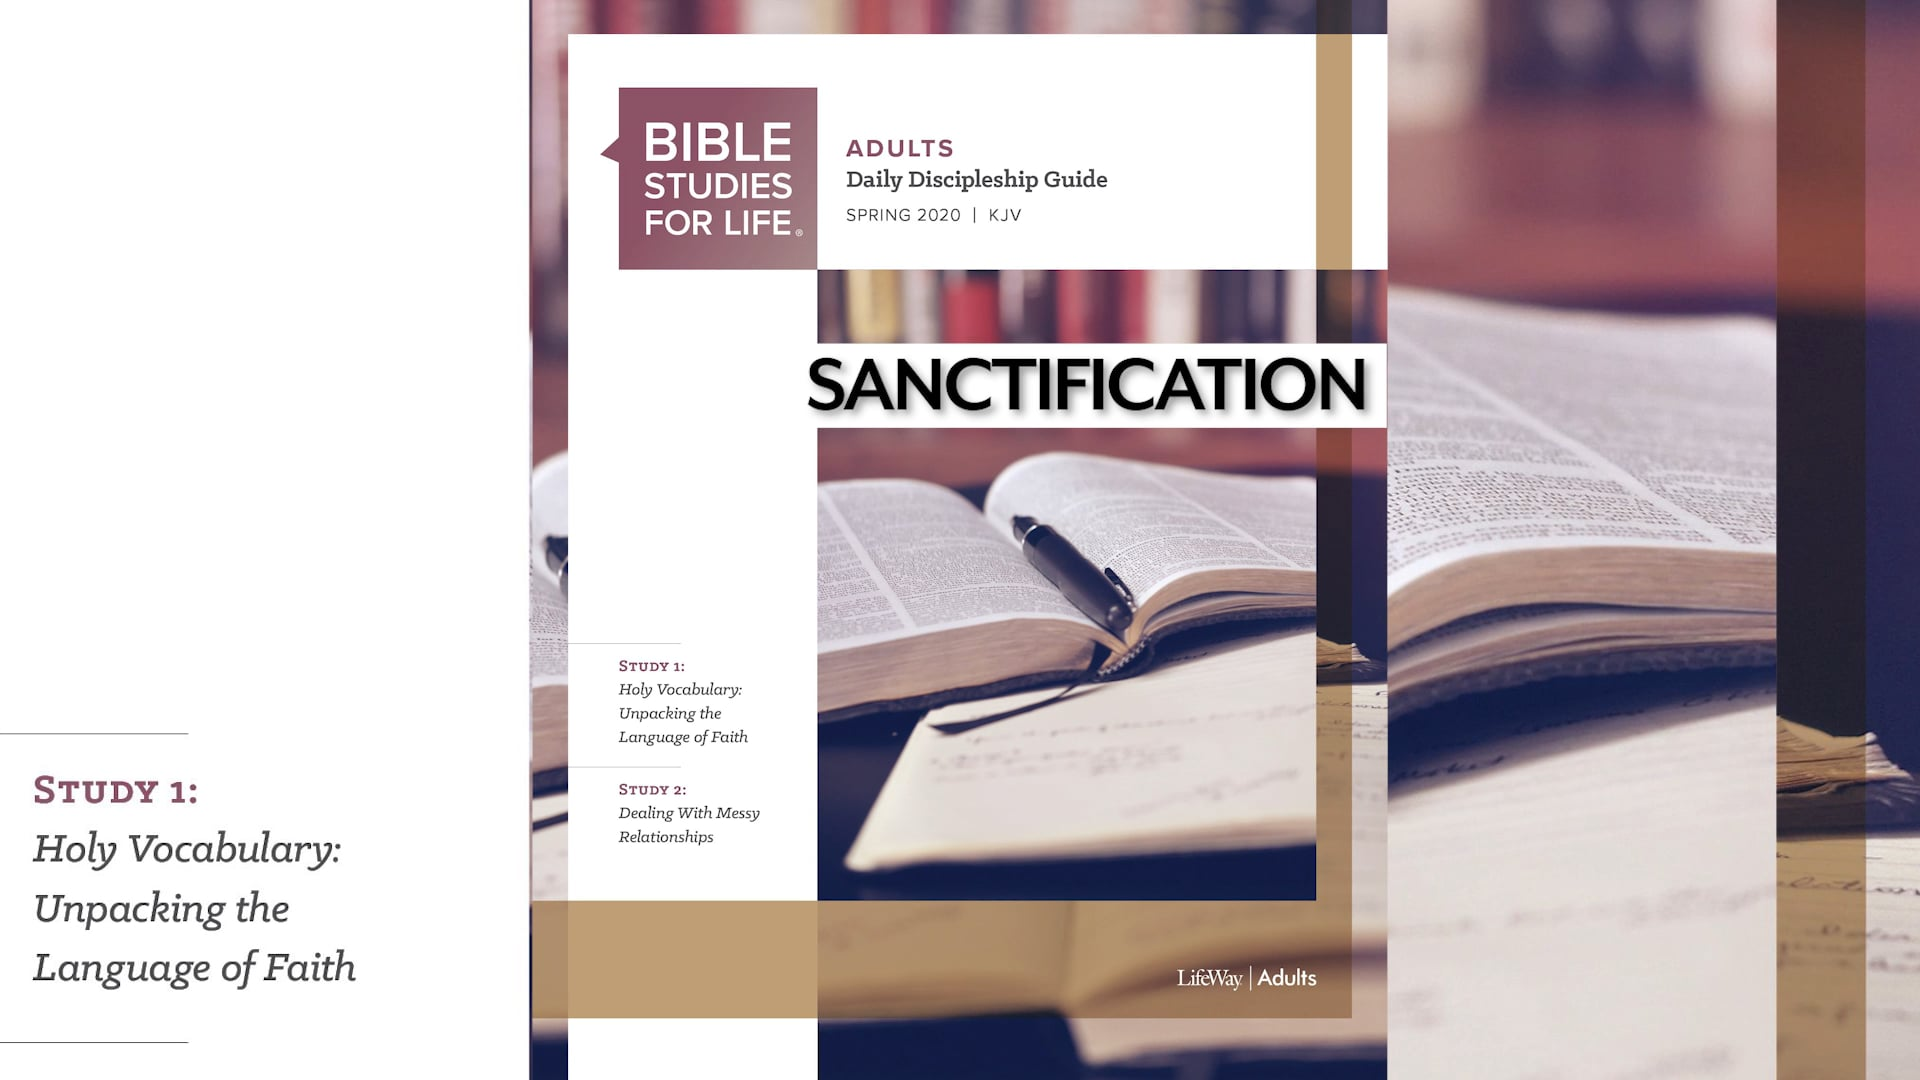 03.27.2020 Bible Studies for Life (Tommy / Ricky) FBCPC